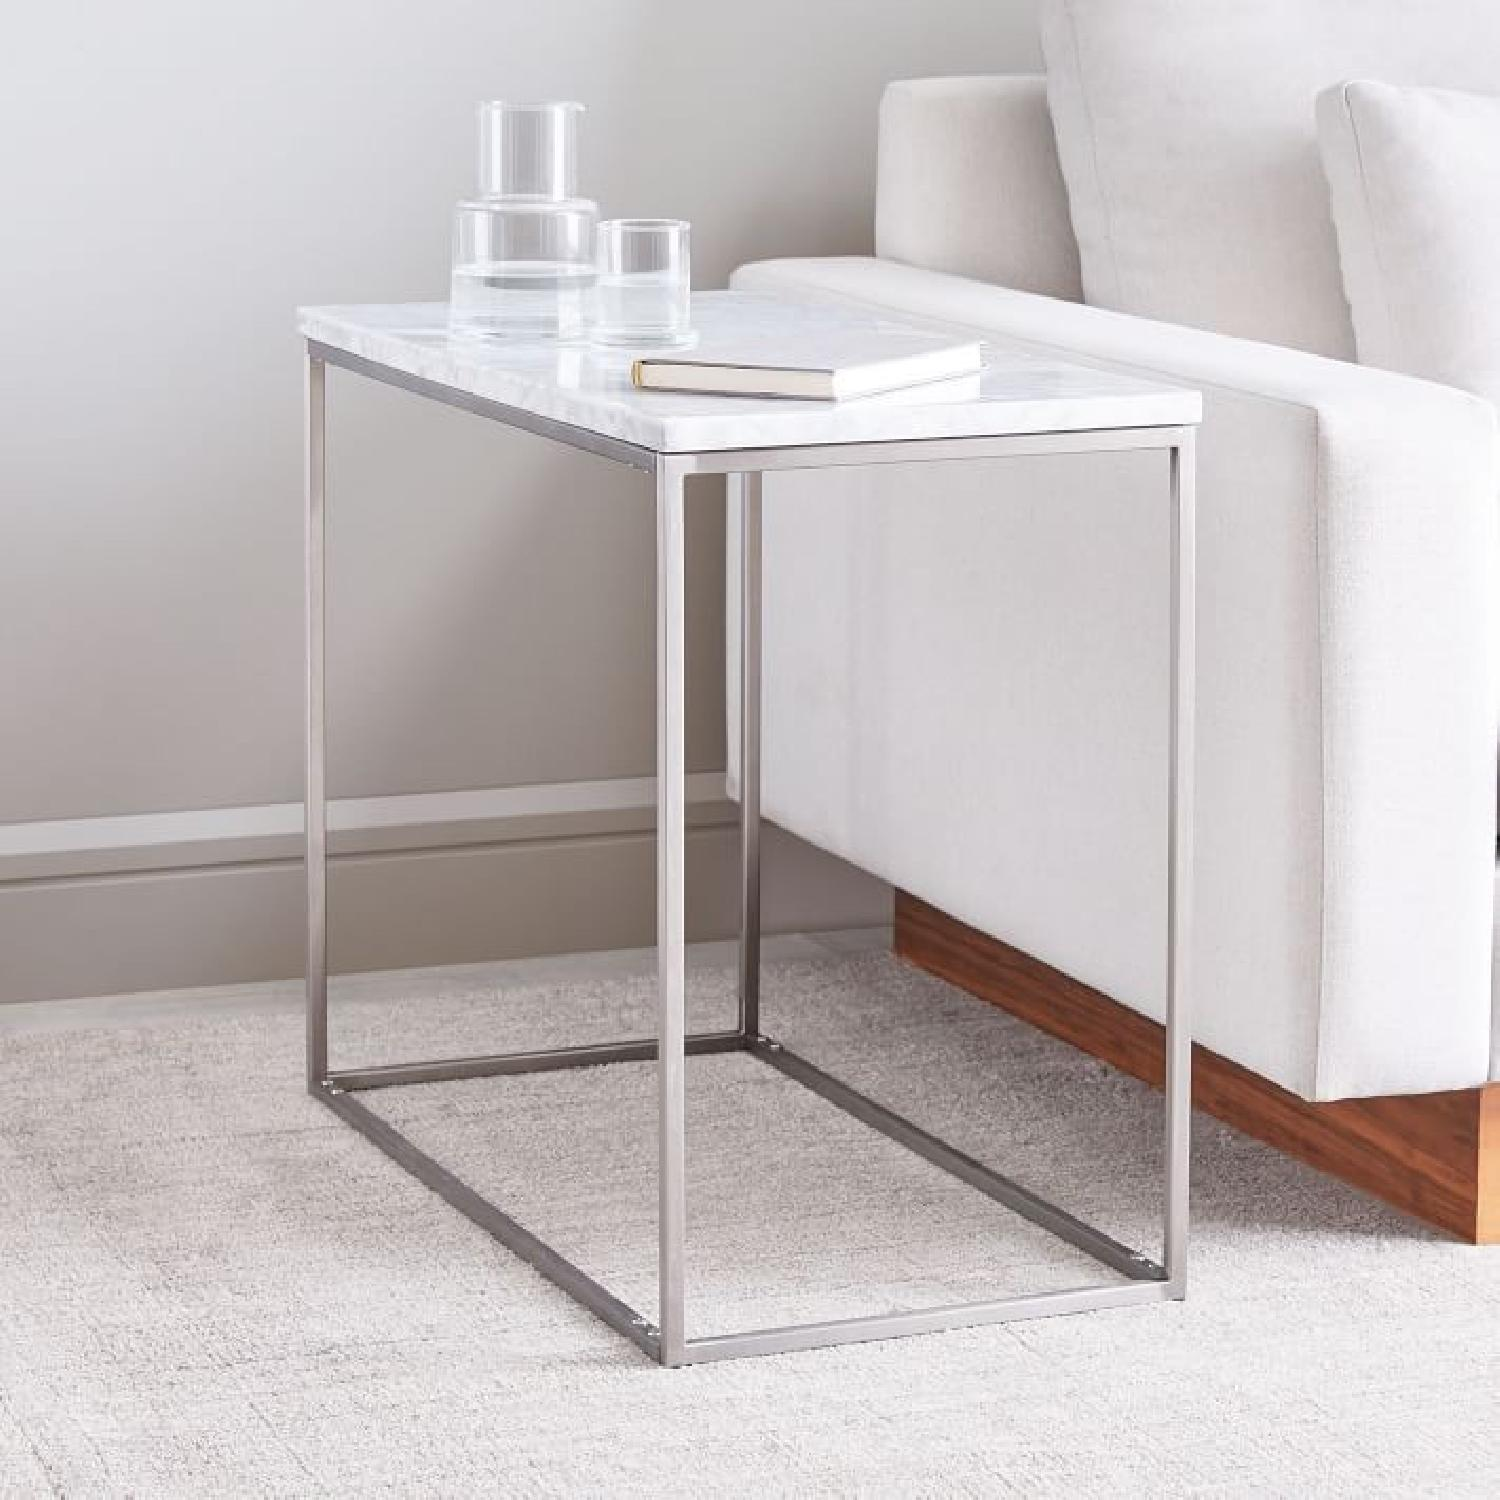 West Elm Marble Streamline Side Table in Satin Chrome - image-2